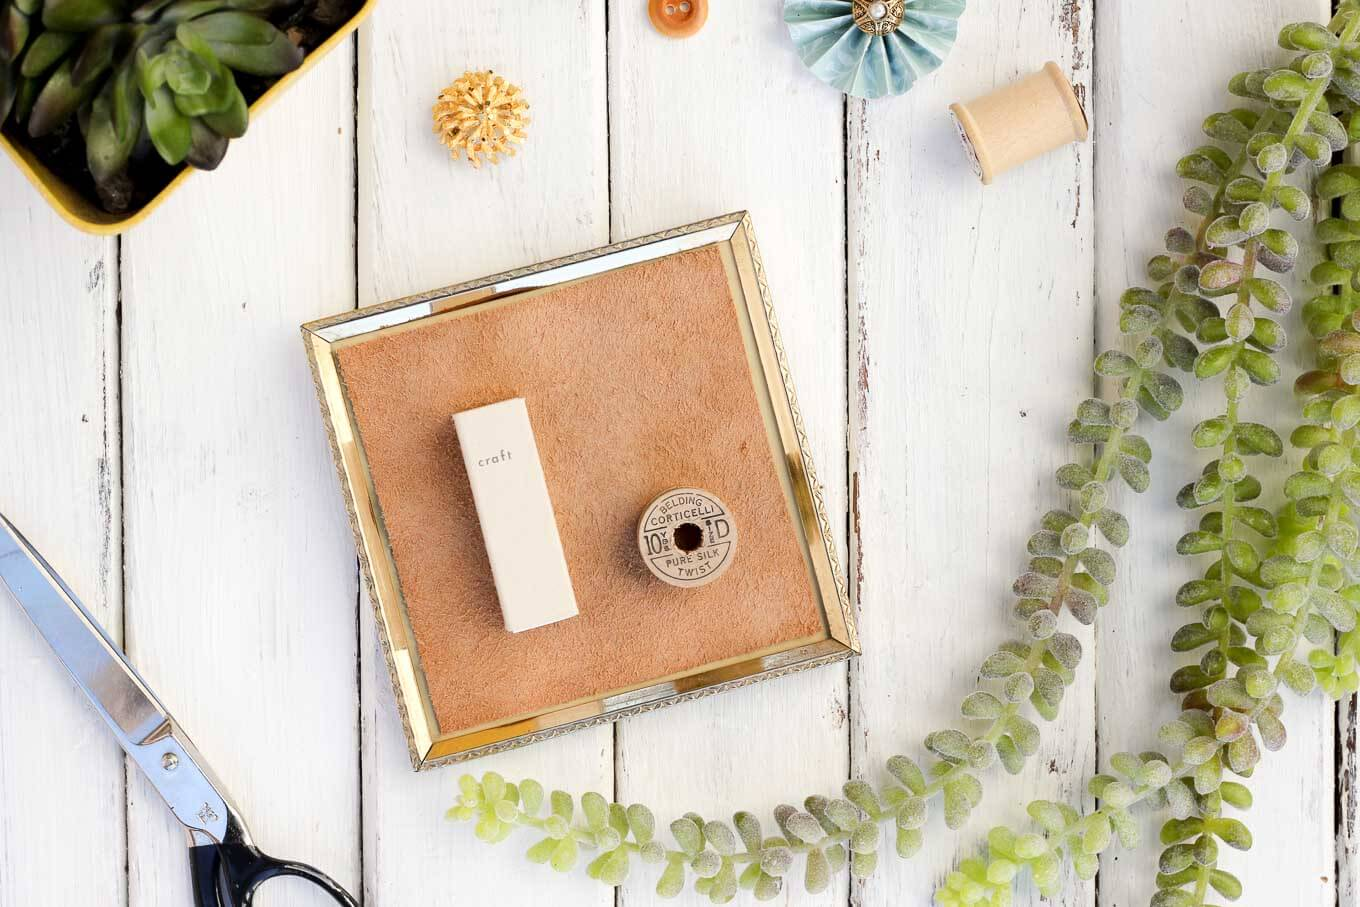 Anything can become a DIY wall decor idea with a little glue and creativity. This matchbook and vintage spool add charming dimension to the gallery wall in this craft room. And this DIY art cost less than a dollar to make! Click to view the tutorial.   MakeAndDoCrew.com